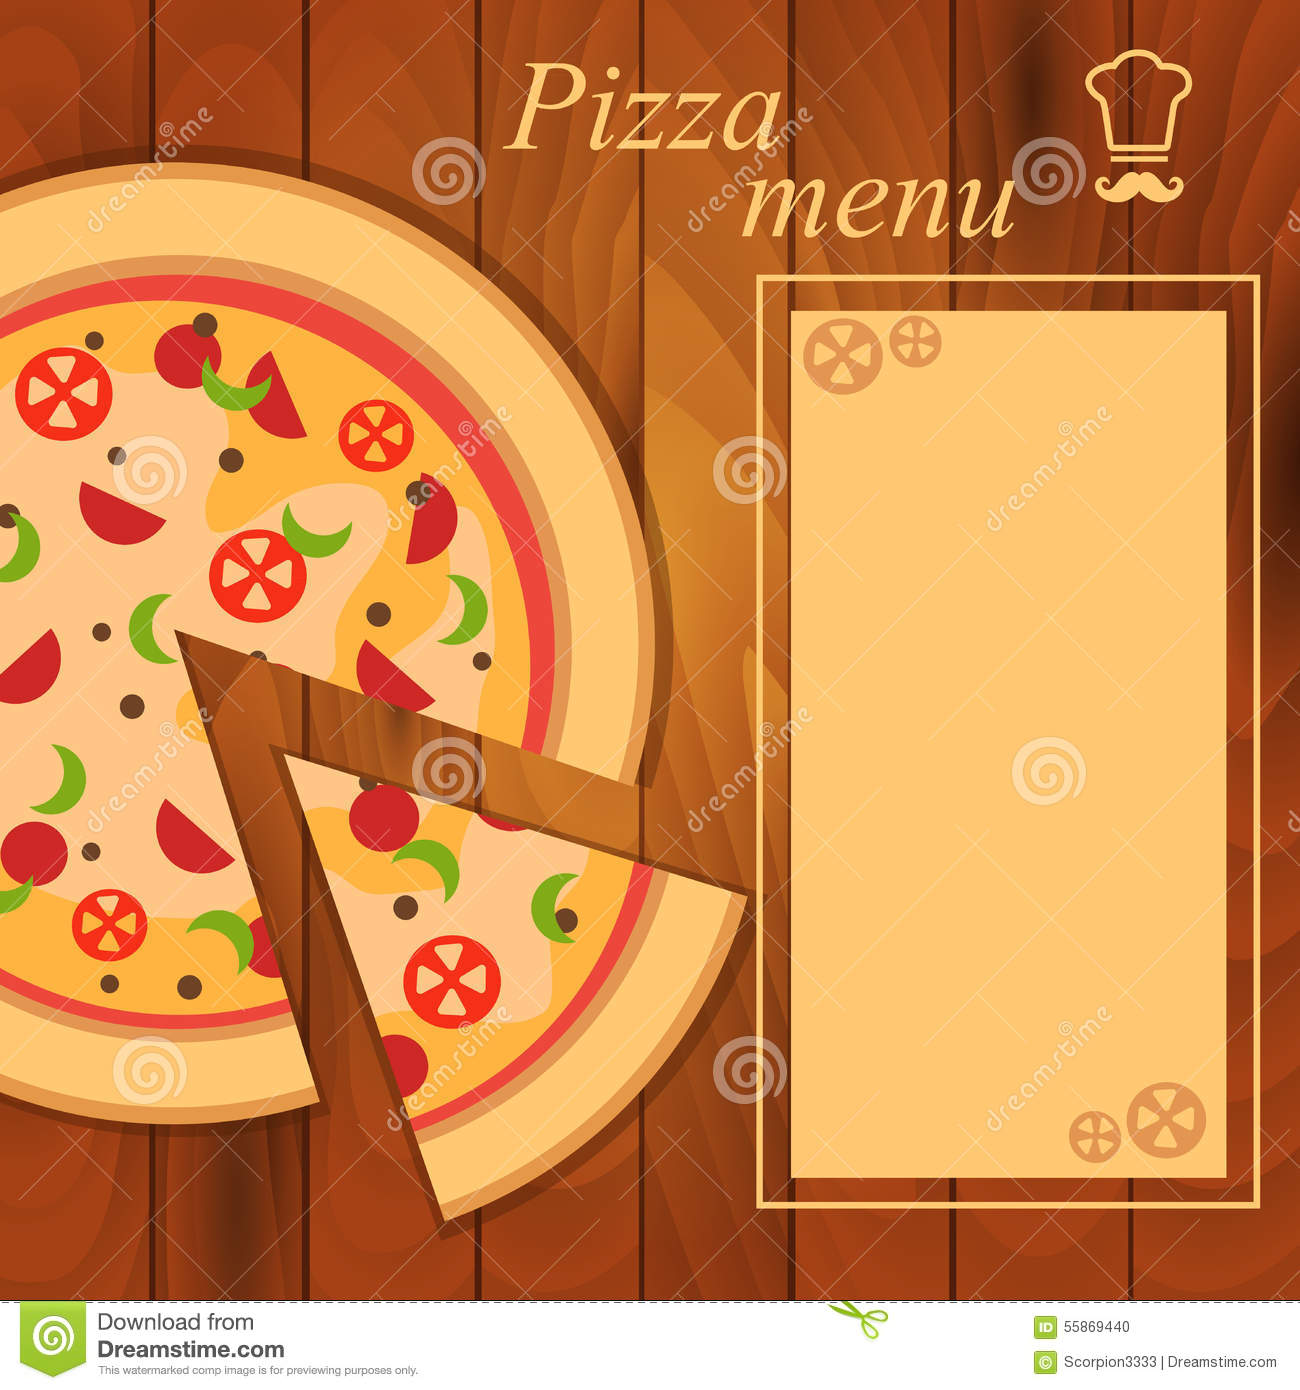 blank pizza images search